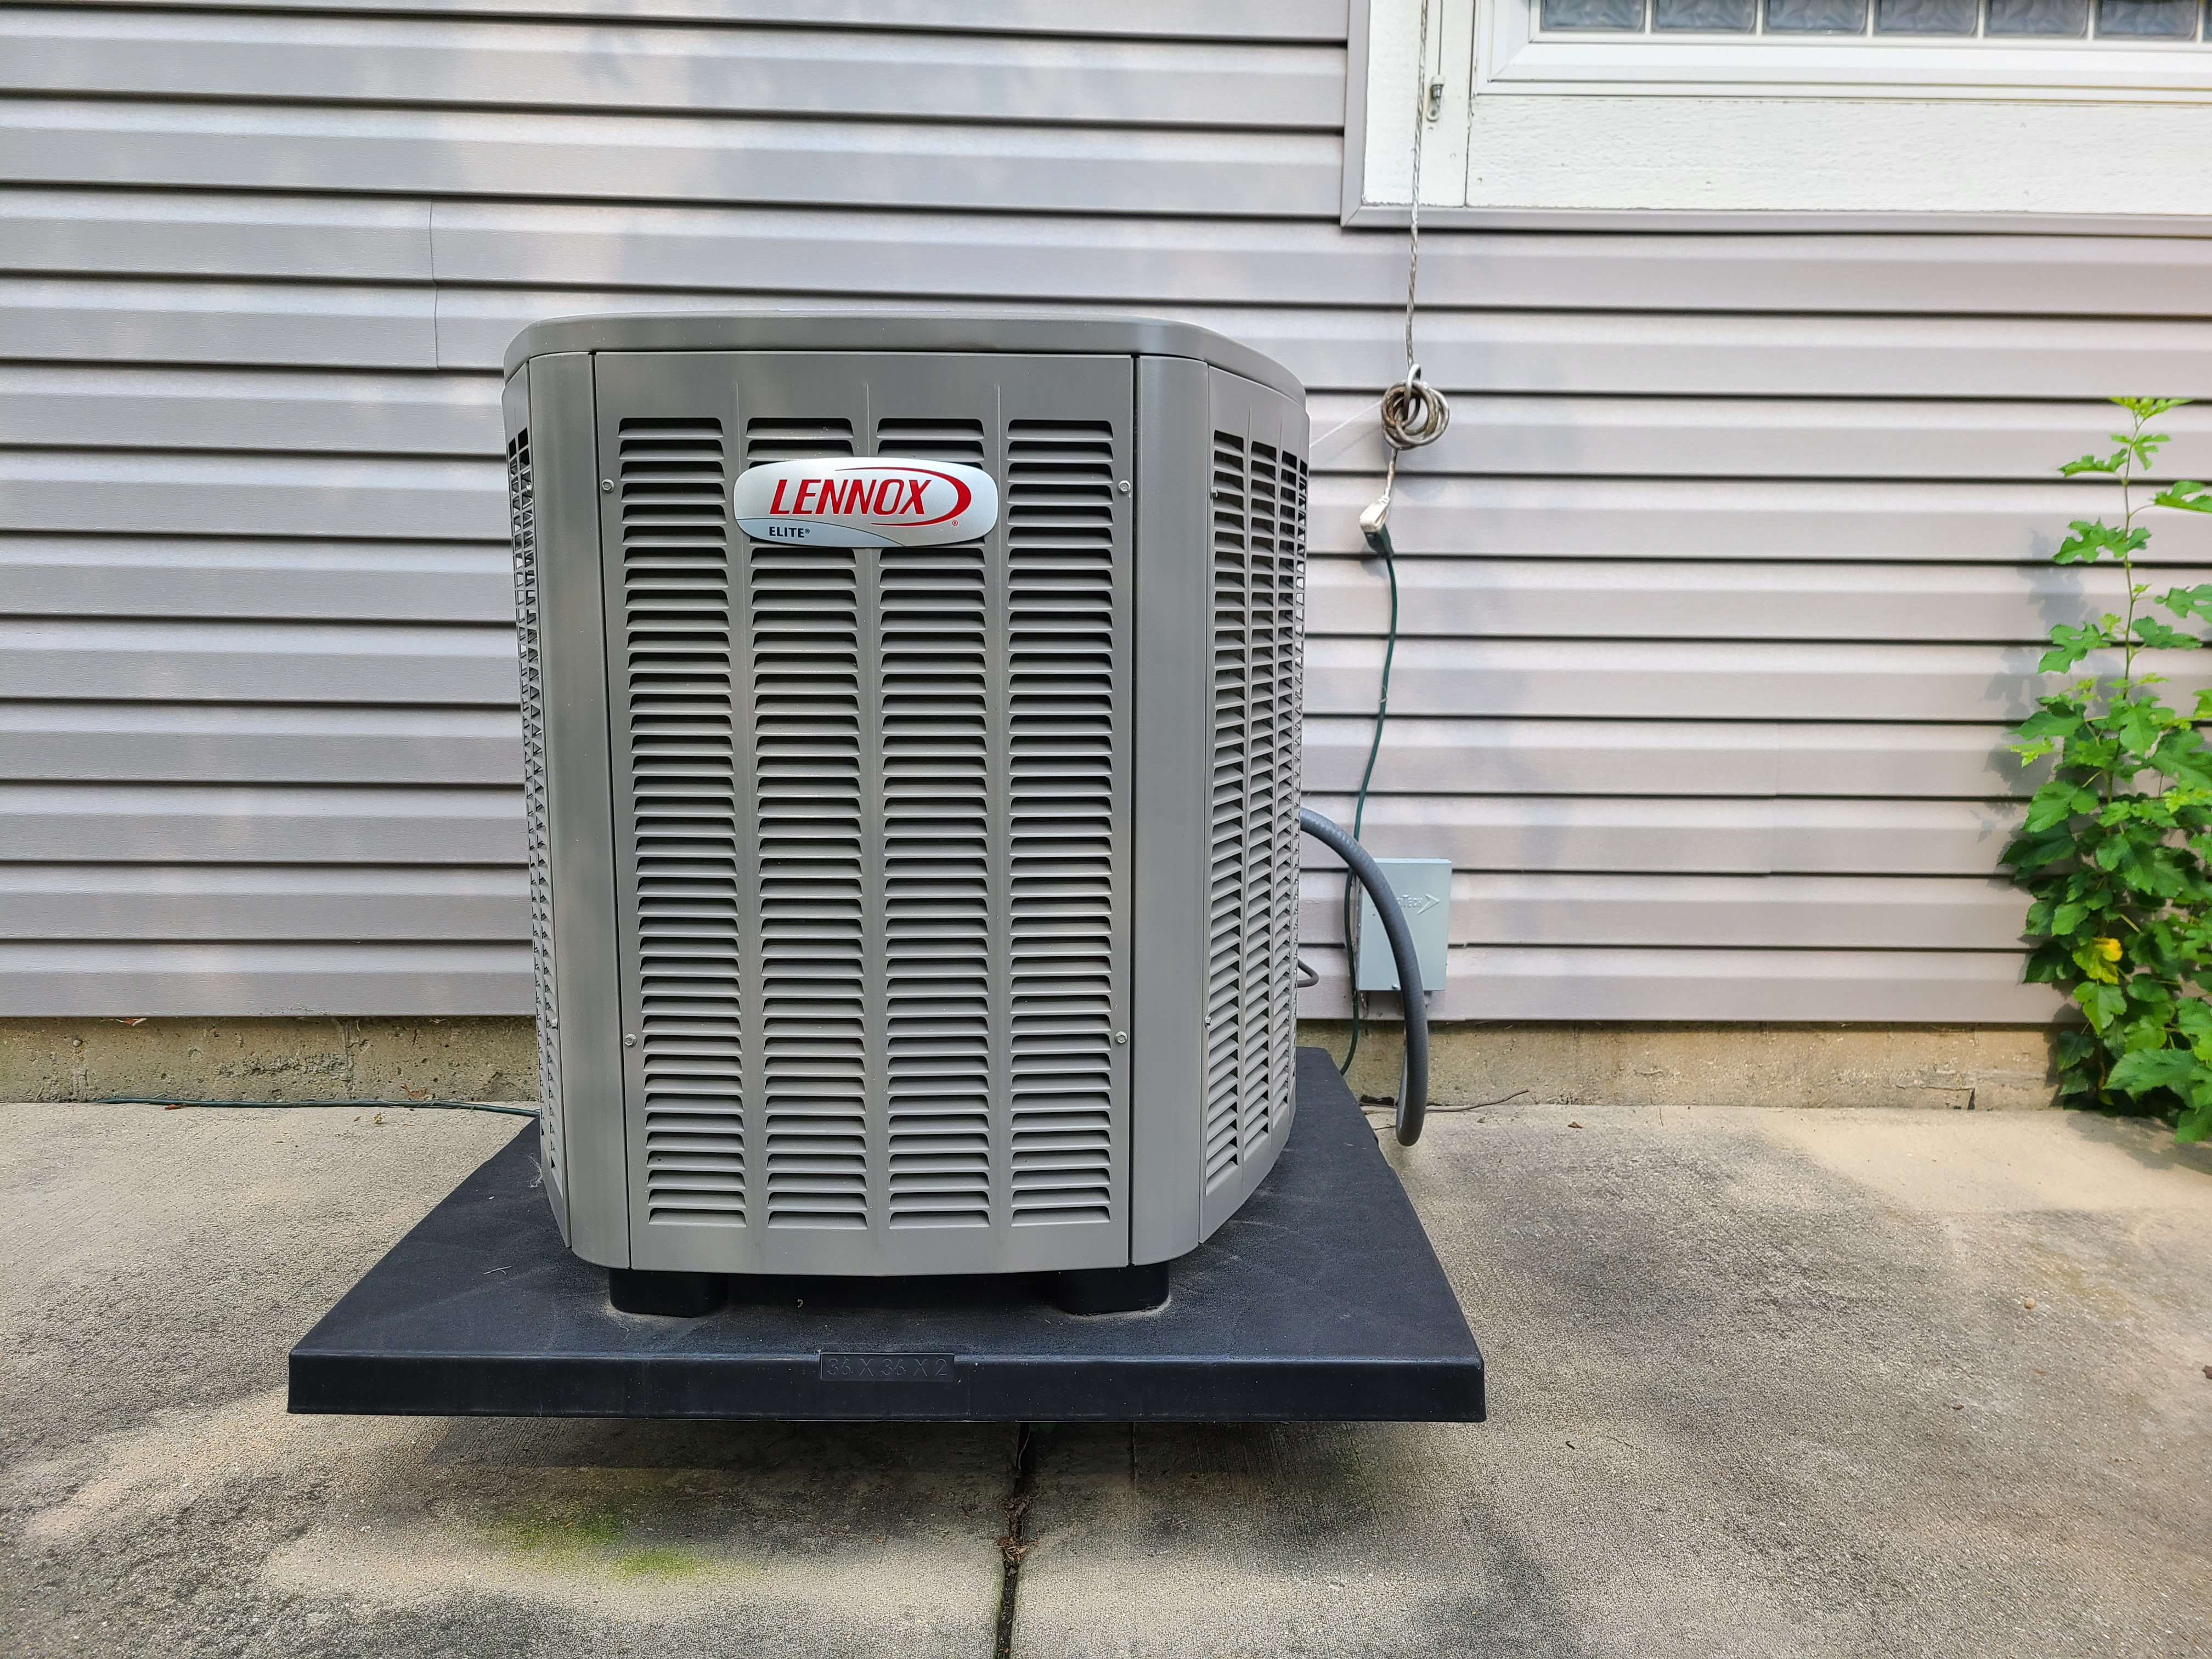 Photo of Lennox condenser after CTS